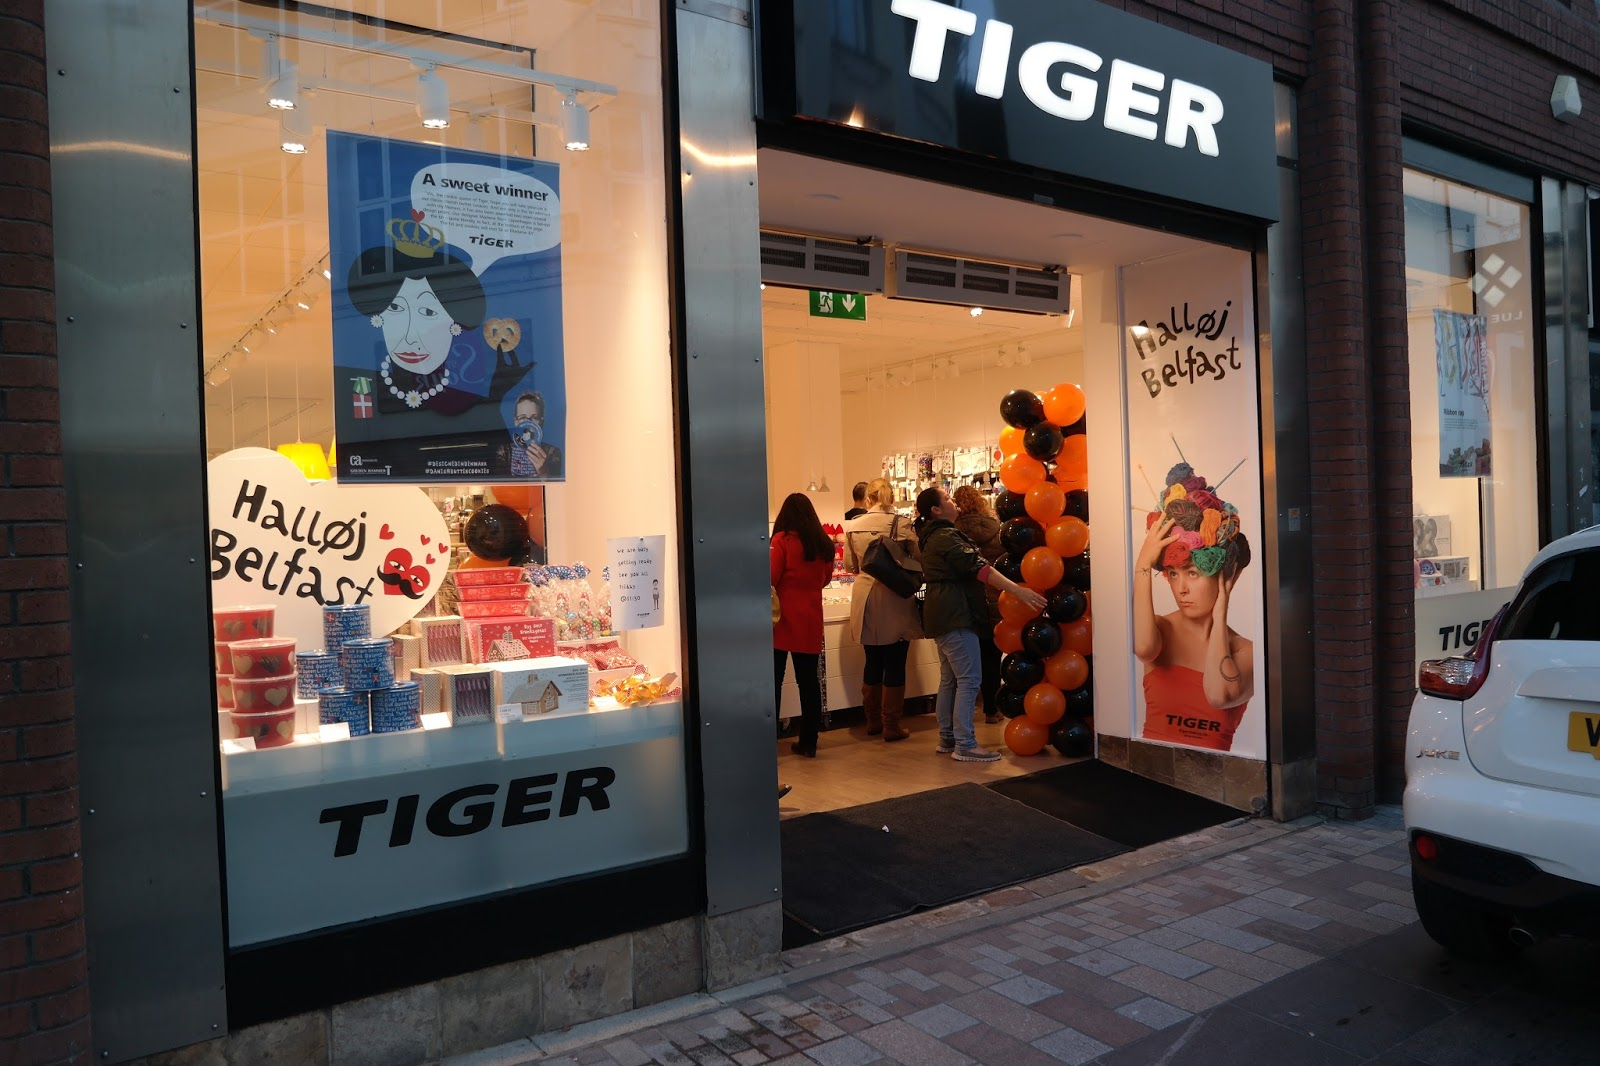 NEW STORE TIGER OPENS IN BELFAST  Eyelinerflicks